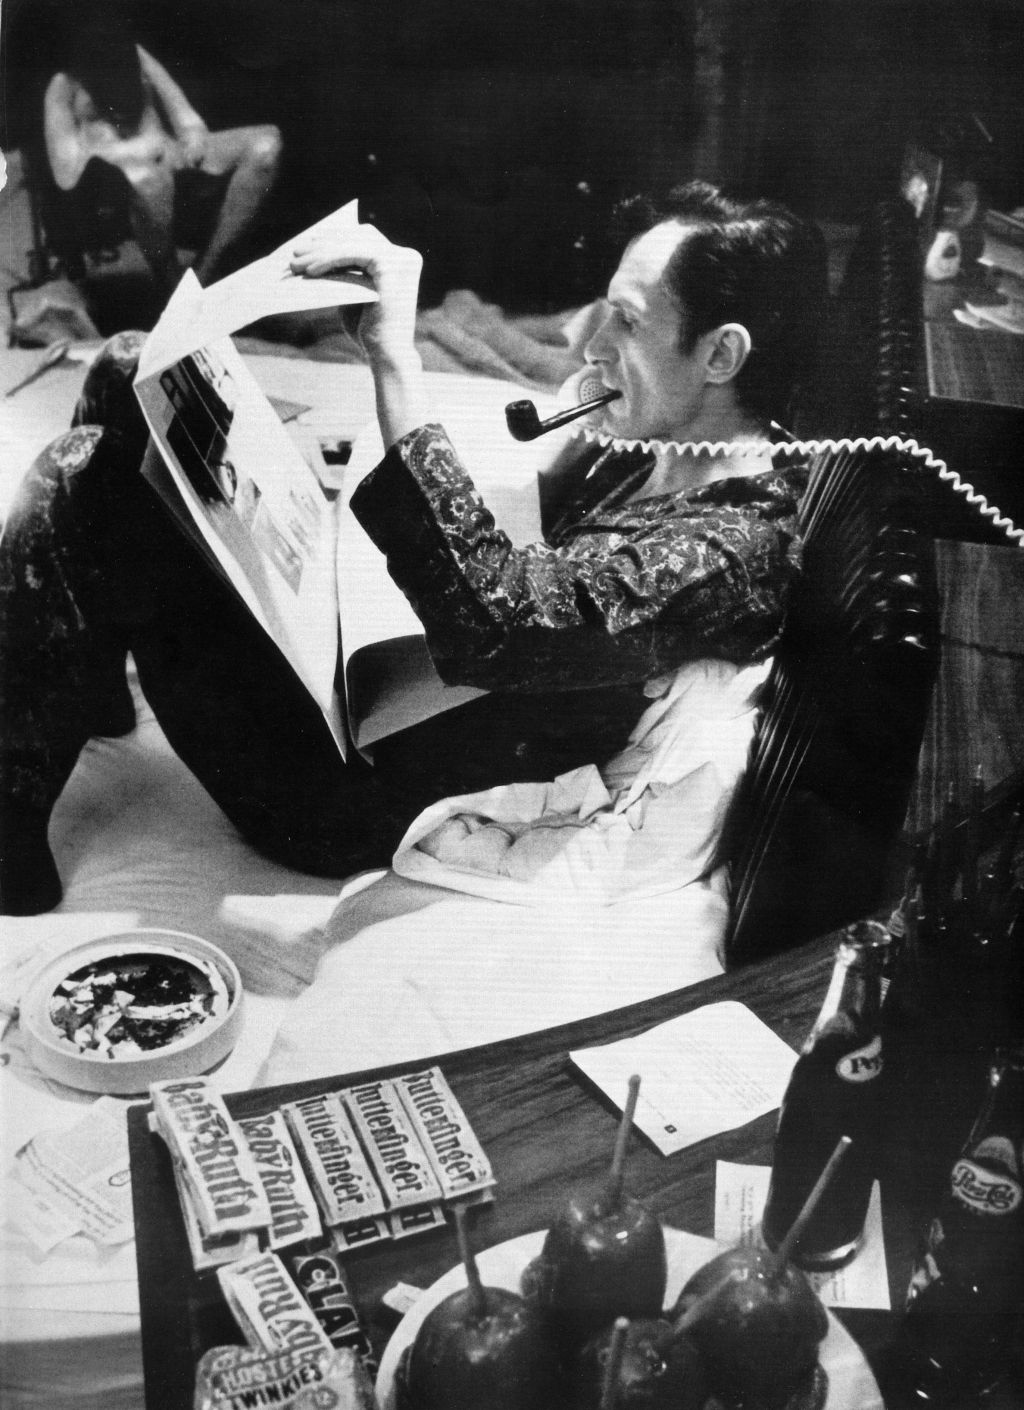 Hugh Hefner in bed at work with array of stimulants at the Playboy Mansion in Chicago. Copyright: Playboy Enterprises International, Inc.